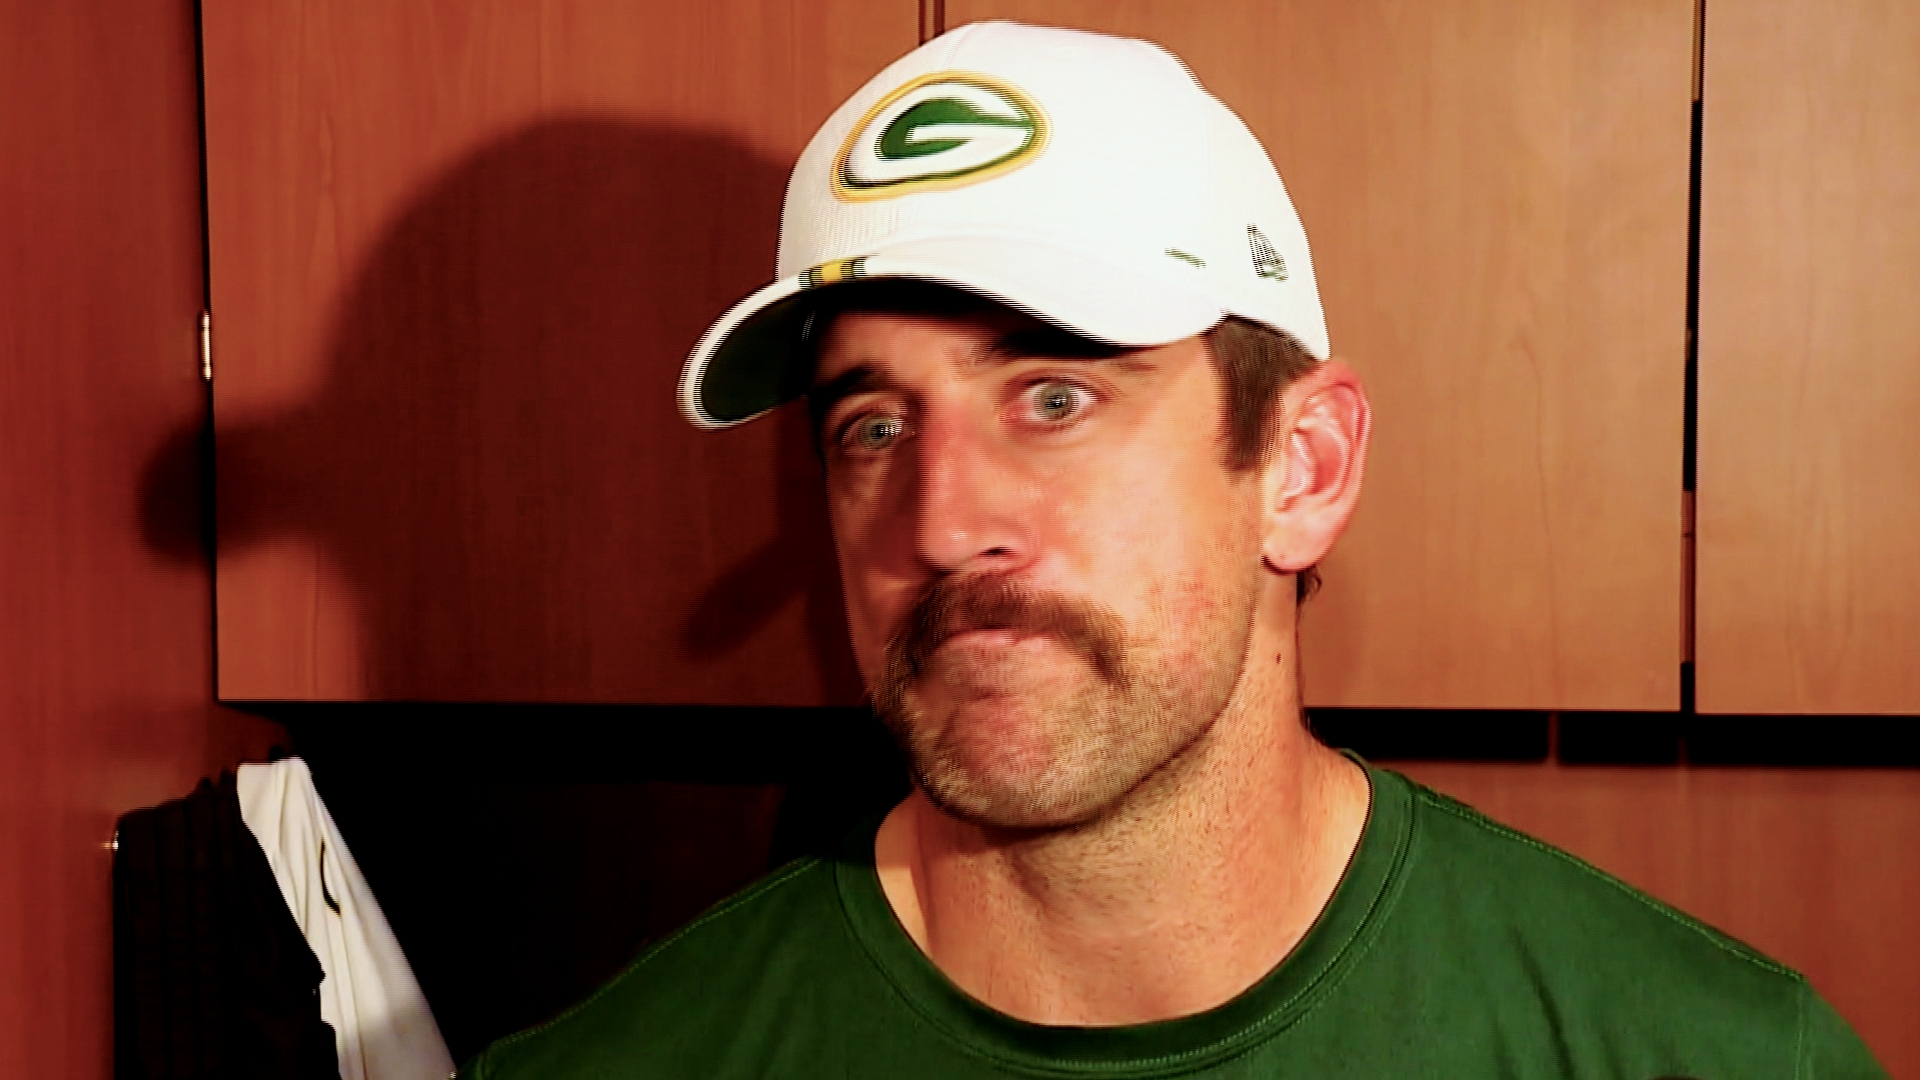 Aaron Rodgers criticizes media for promoting 'clickbait'